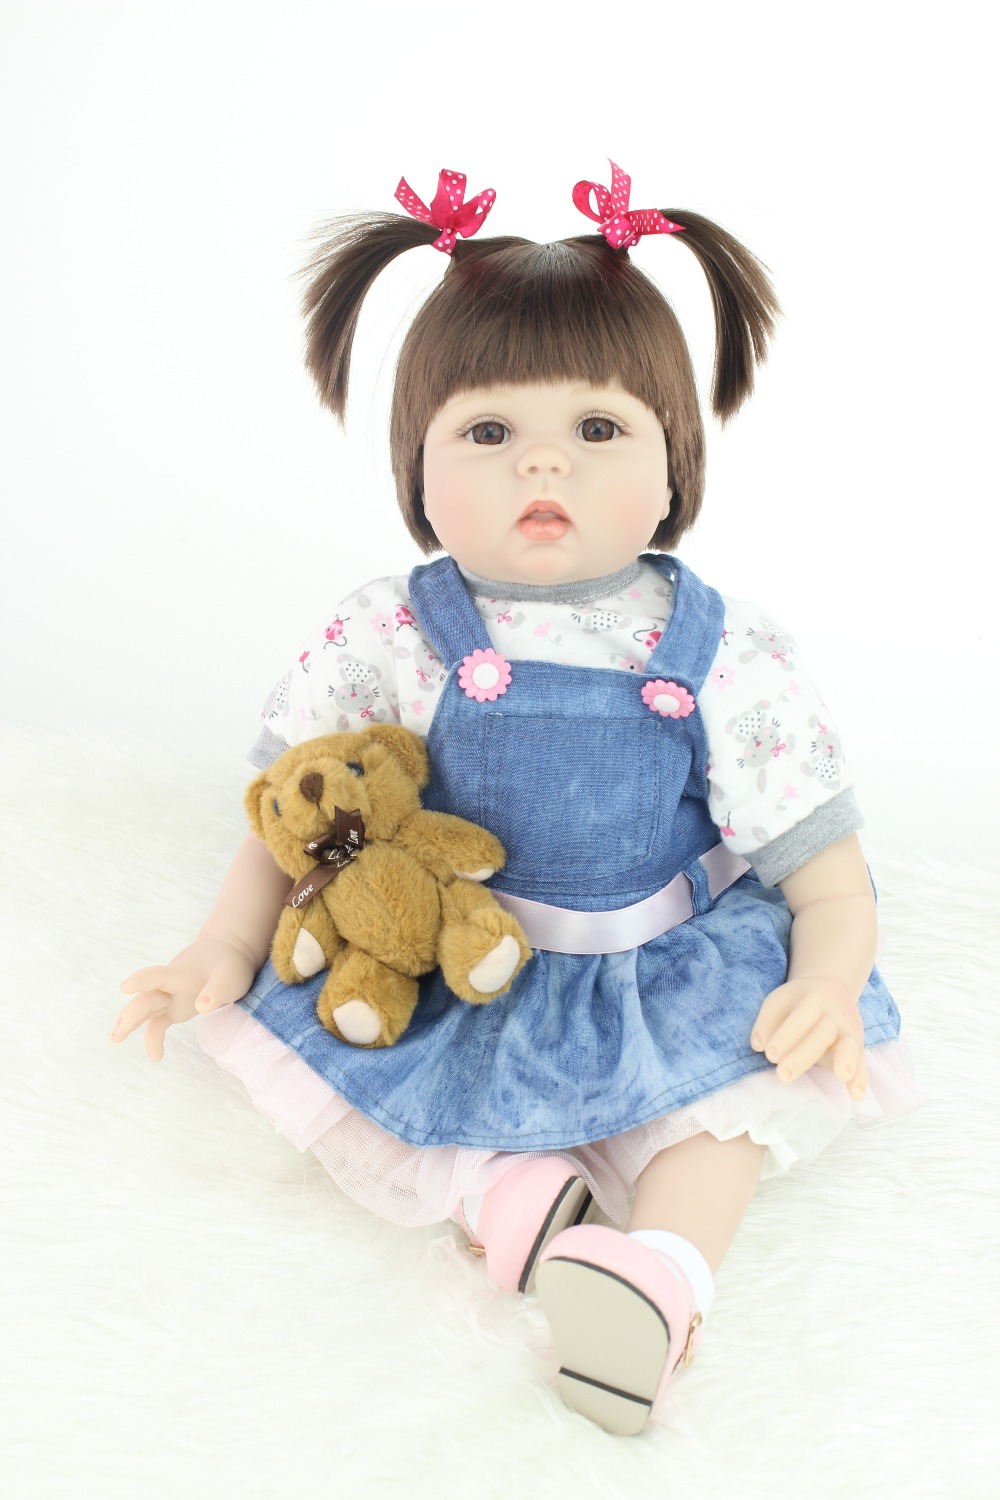 2015 NEW hot sale lifelike reborn baby doll rooted human hair 22mm brown eyes fashion doll Christmas gift old gift